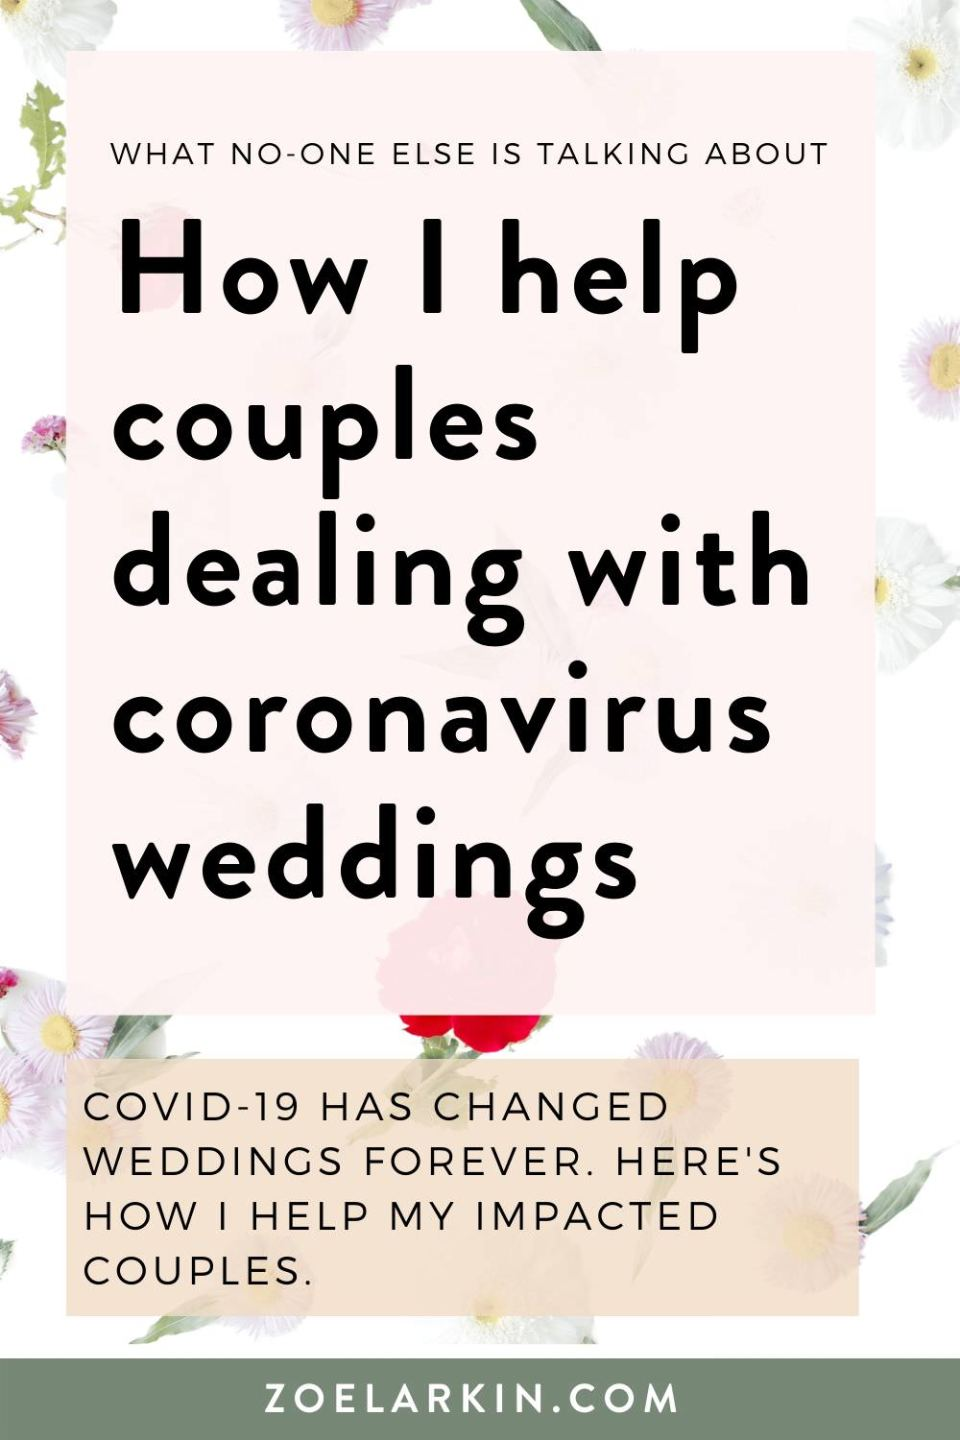 How I as a wedding photographer helps couples dealing with coronavirus weddings! It's hard to figure out what to do when you're dealing with wedding reschedules. Figuring out how to cancel, postpone, or downsize your wedding can be very tough. I'll guide you through the policies that support my couples during these difficult times. Flexibility and understanding are the most important qualities when dealing with the heartbreak of COVID weddings. #weddings #weddingvendors | Zoe Larkin Photography